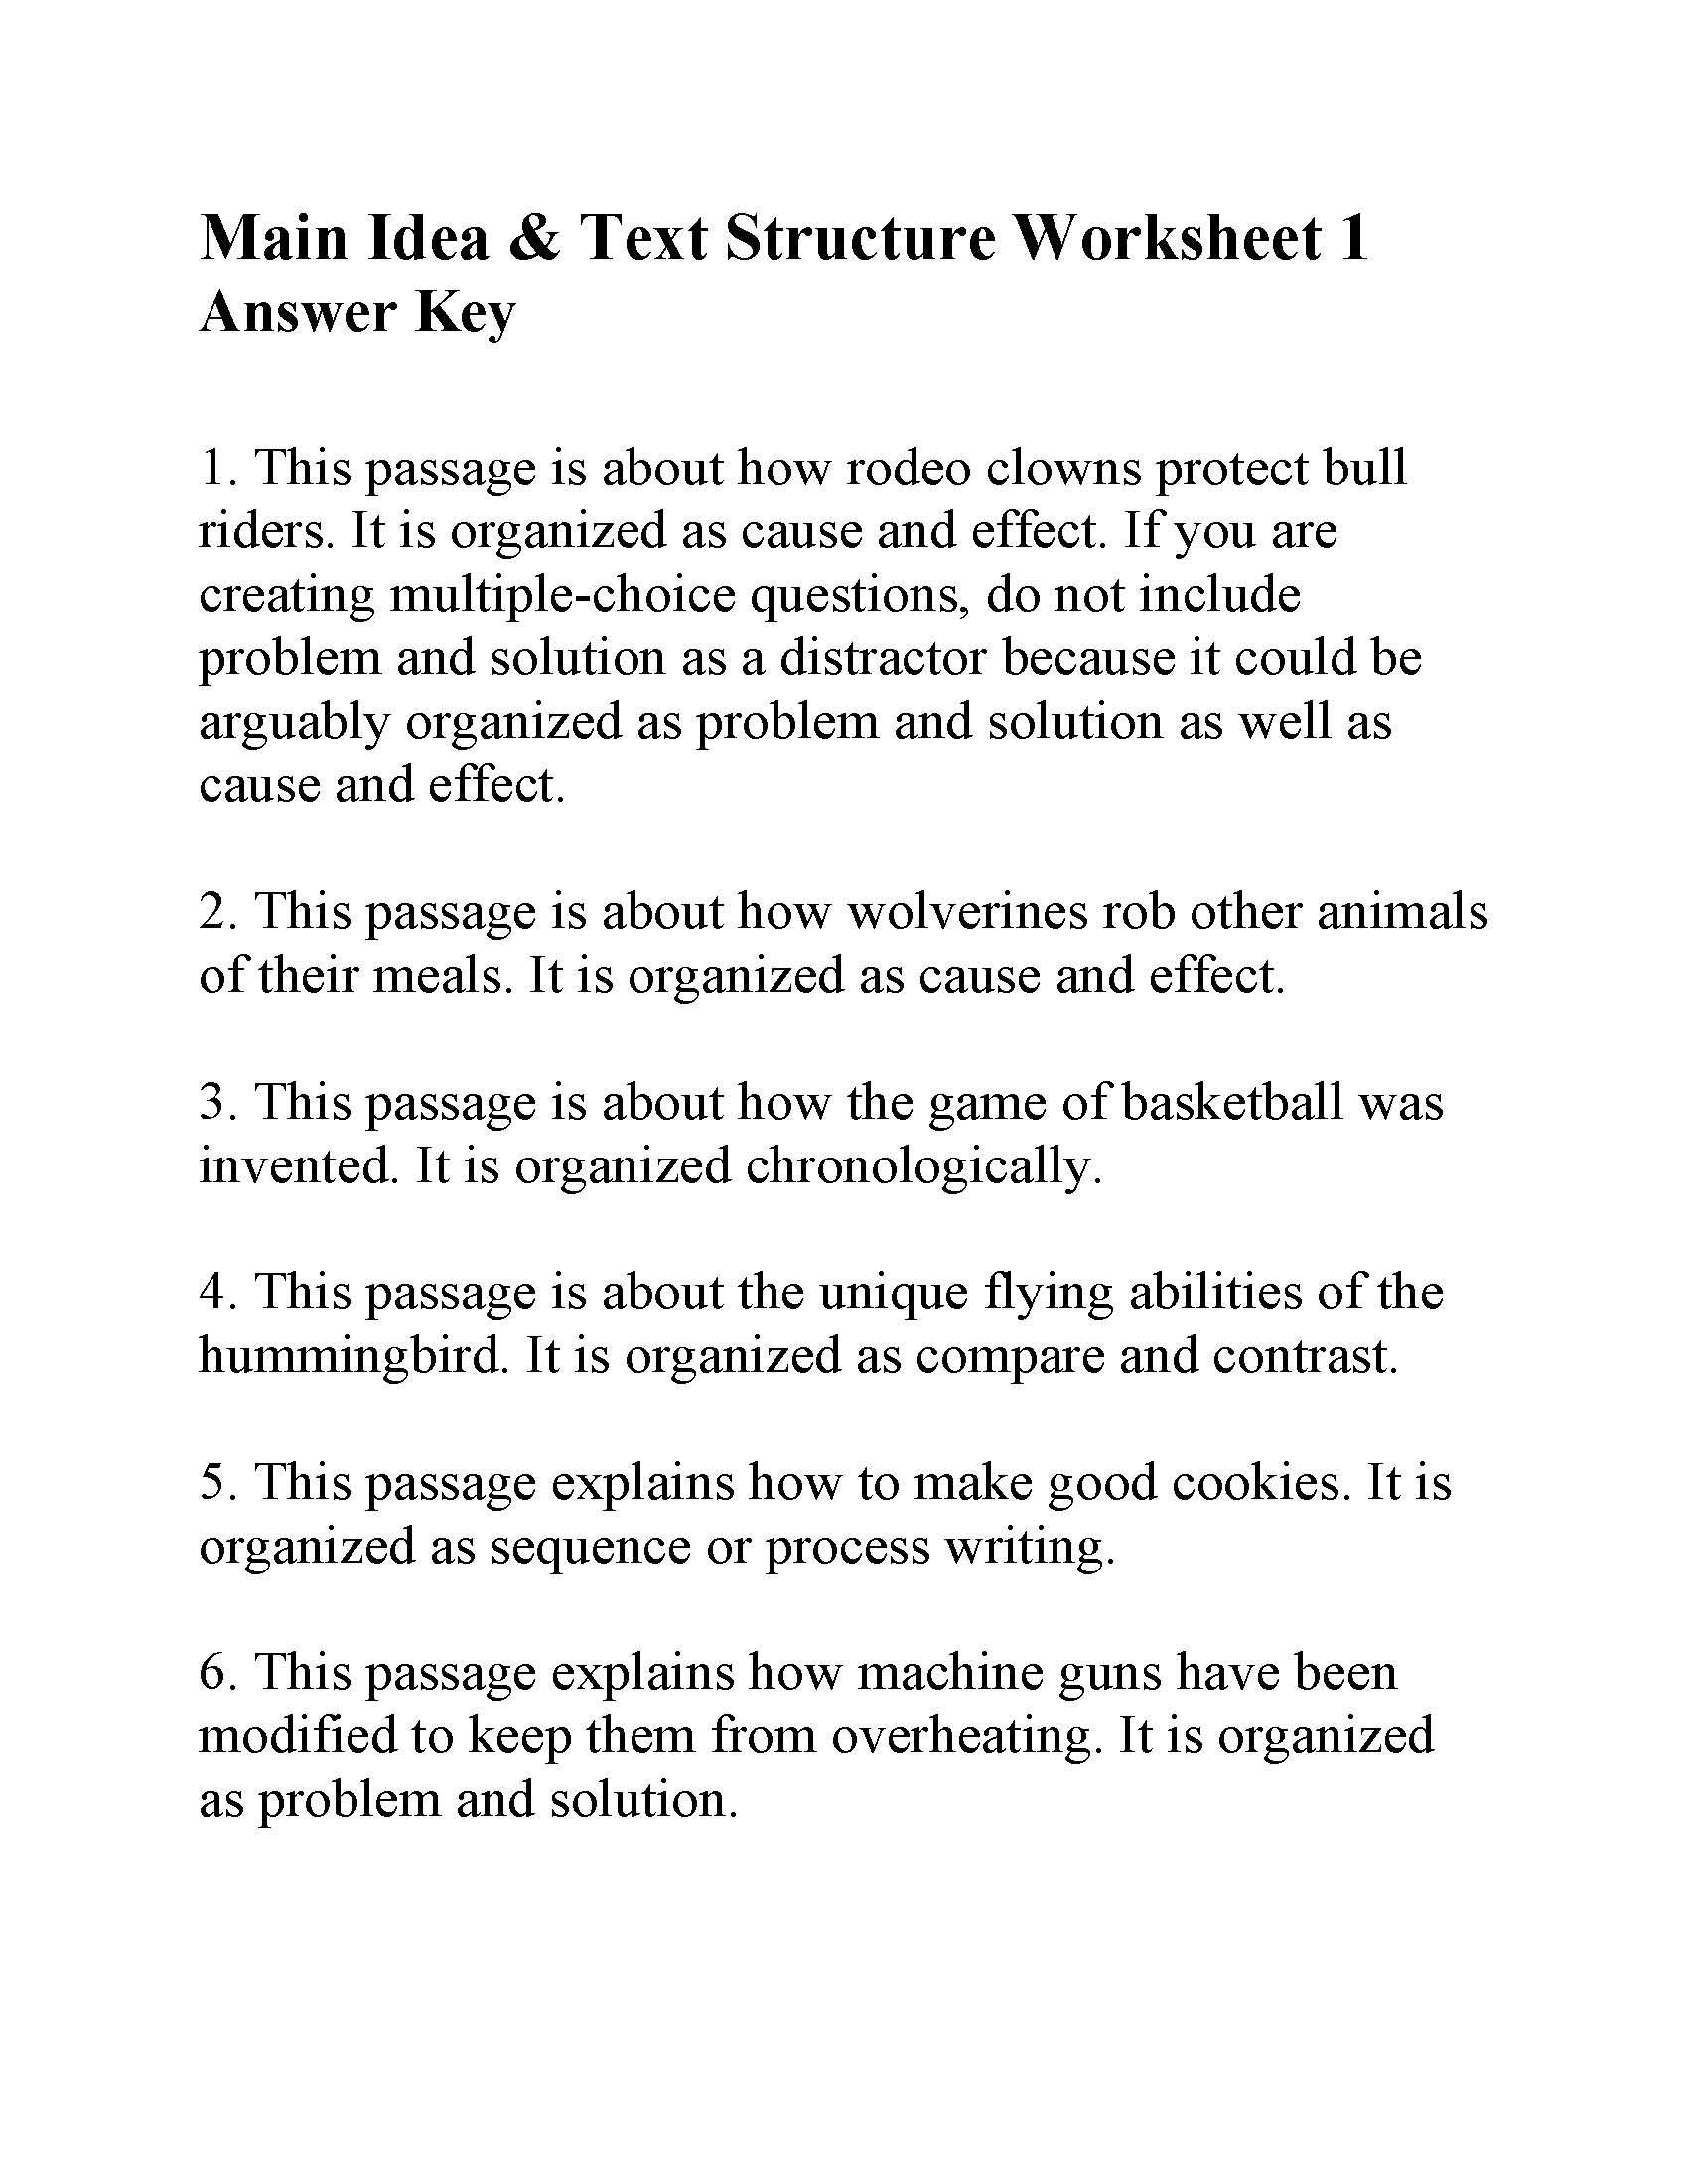 Text Structure 3rd Grade Worksheets This is the Answer Key for the Main Idea and Text Structure